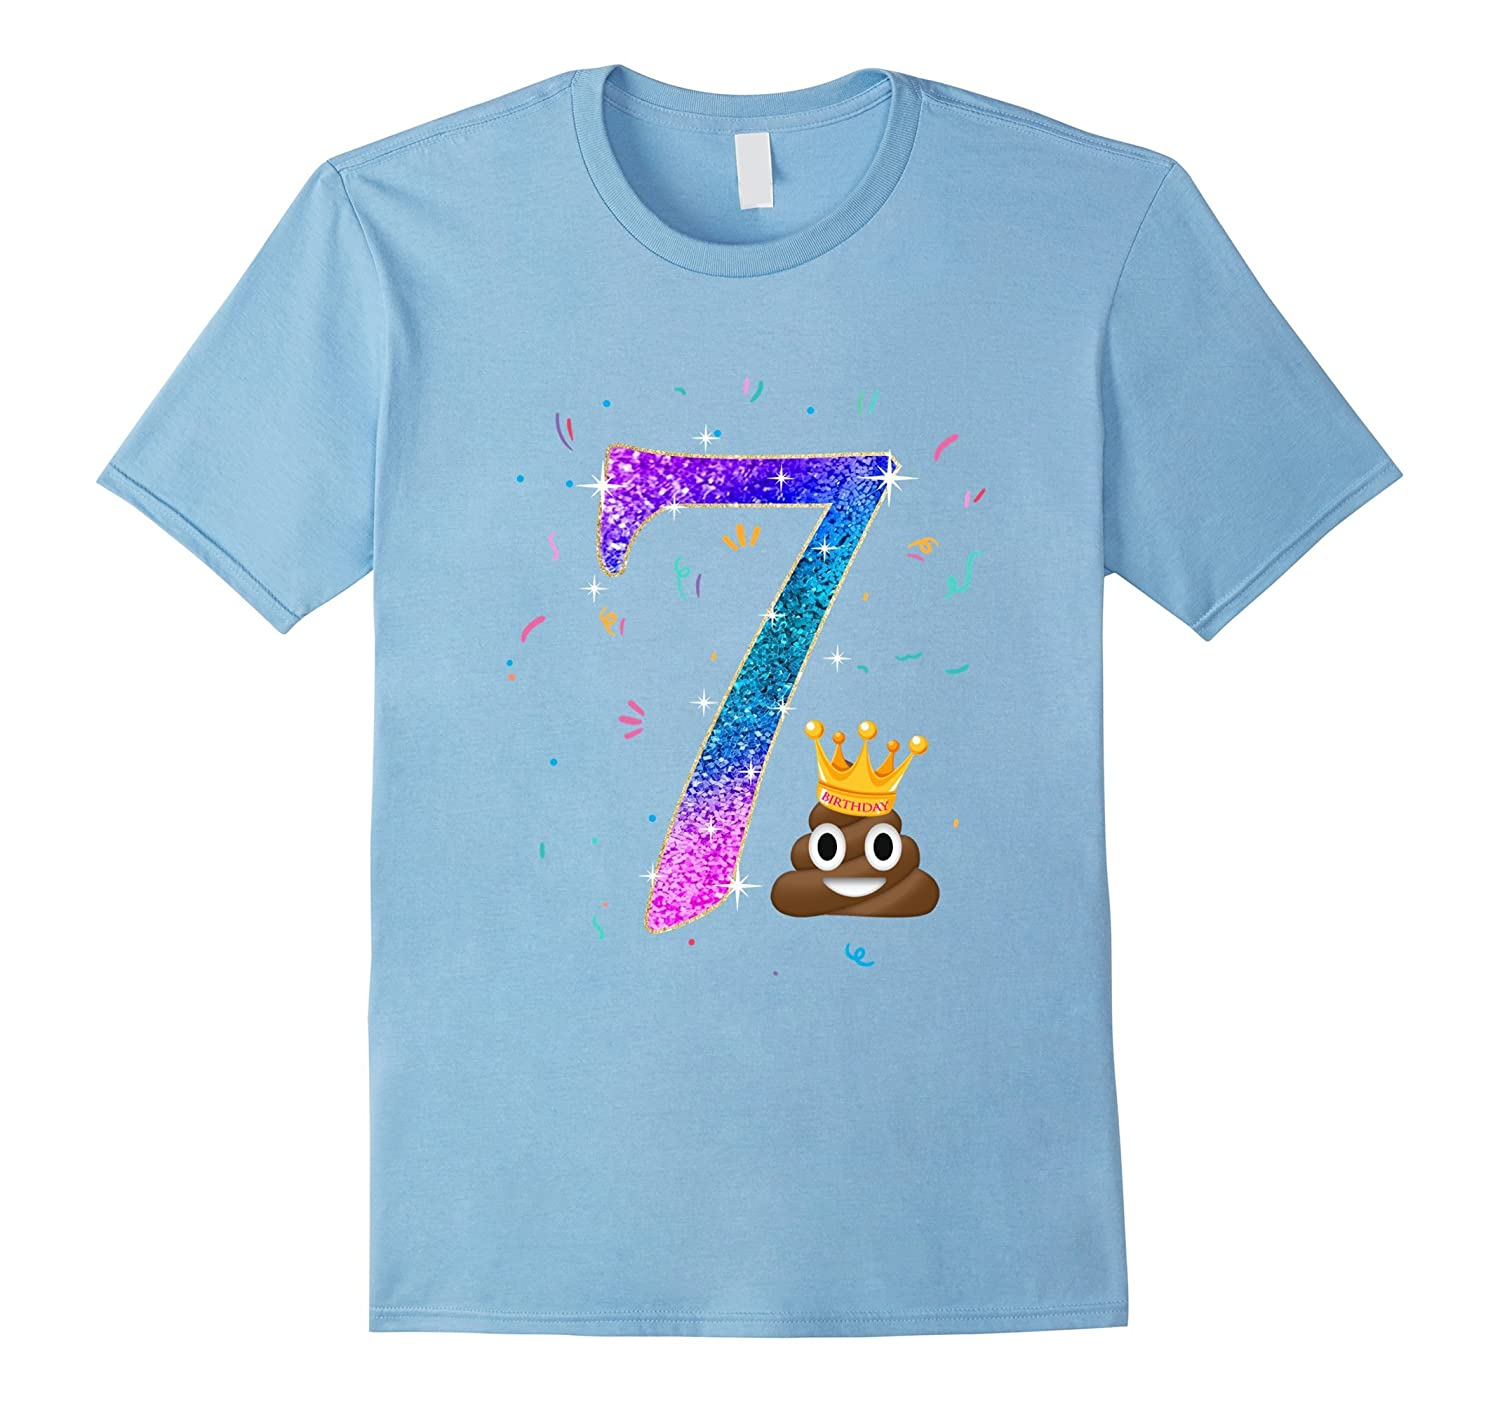 7th Birthday Shirt Poop Emoji Birthday Shirt Funny Gifts